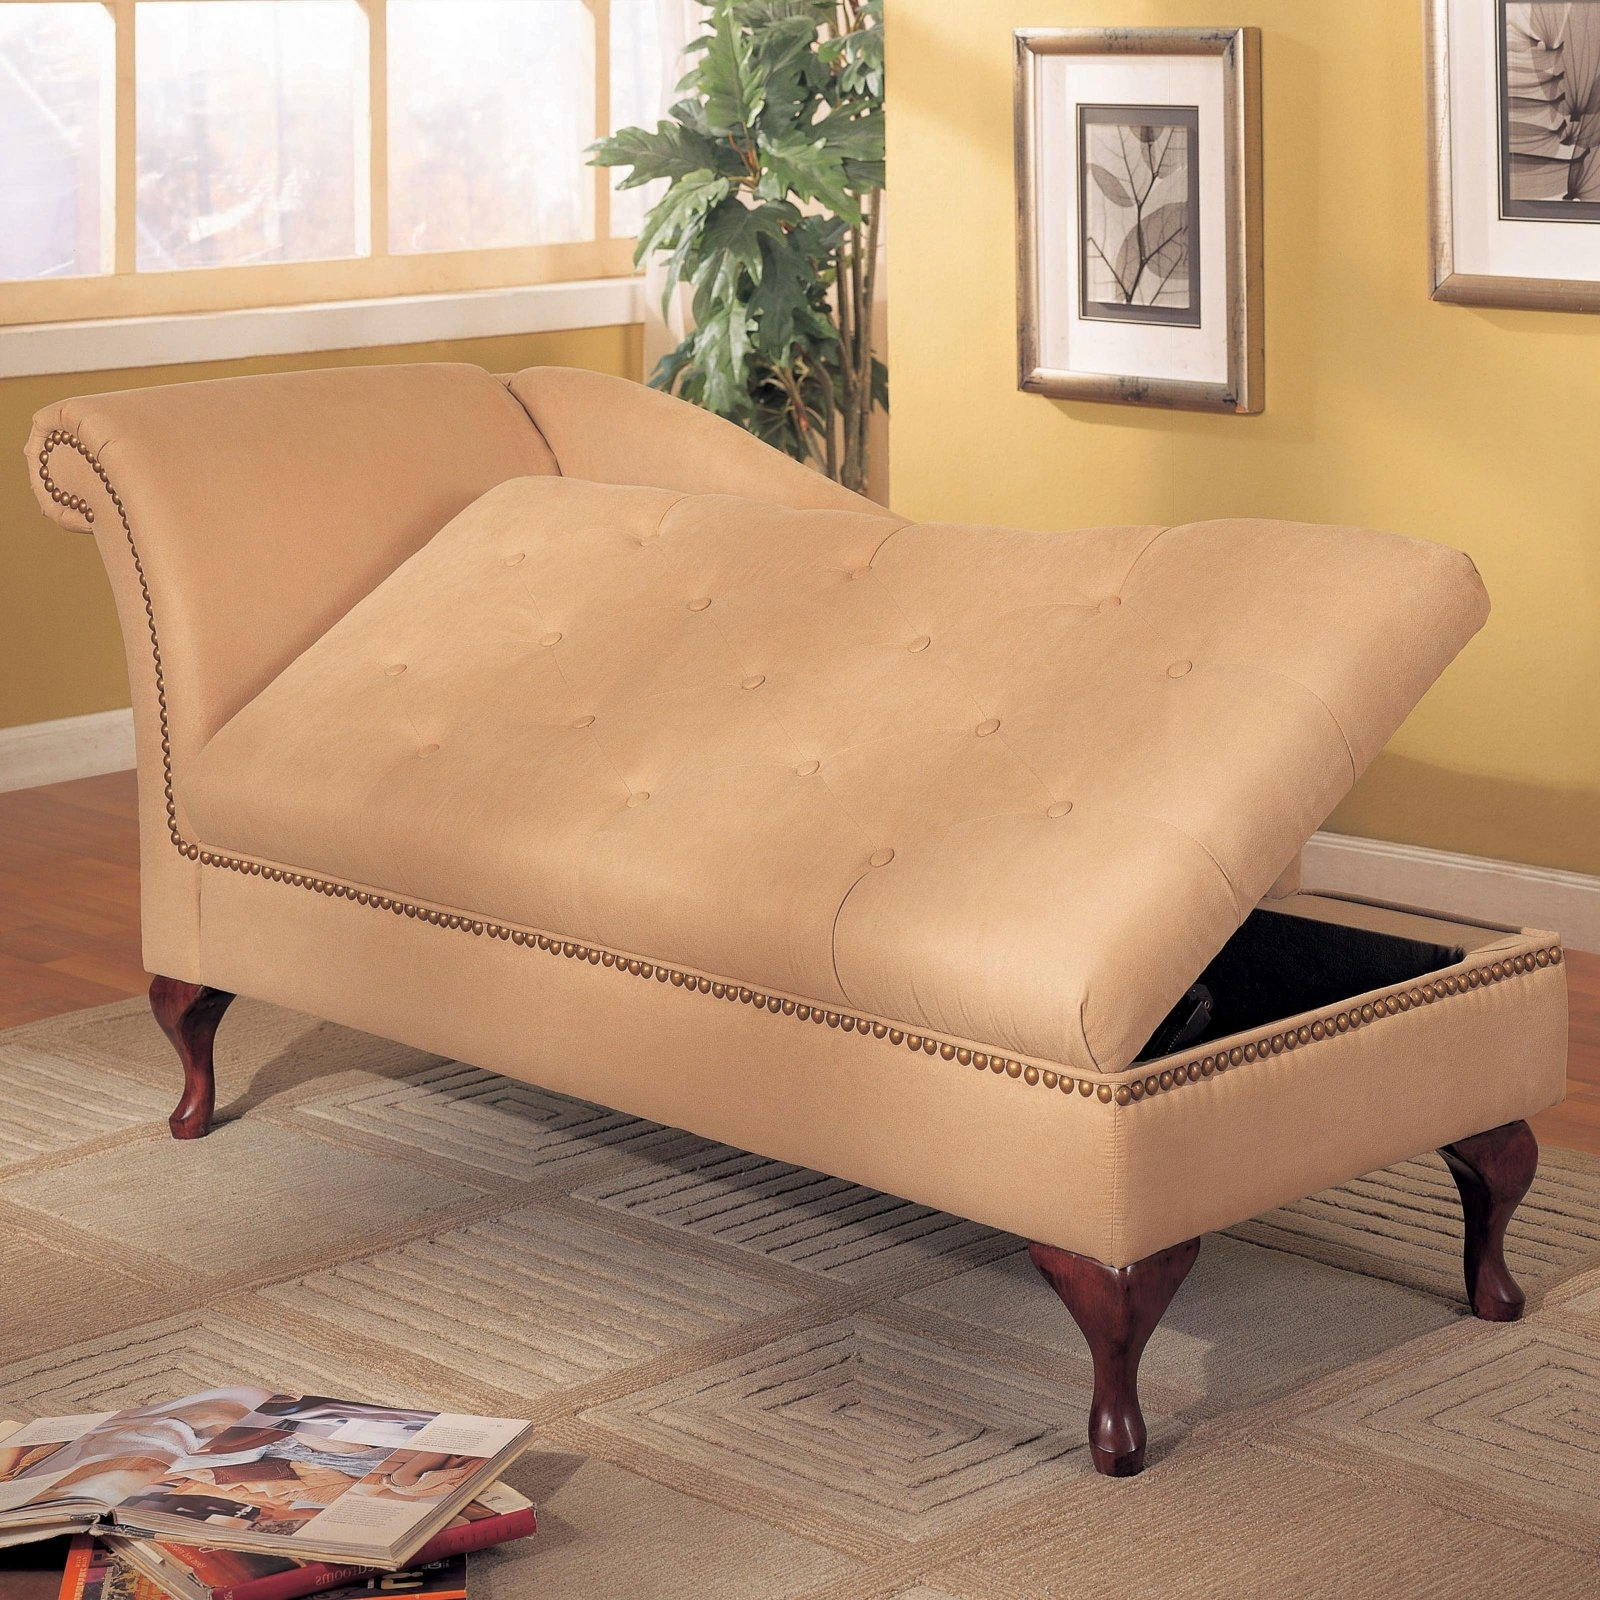 Chaise Lounges With Storage Within Most Up To Date Indoor Chaise › Indoor Chaise Lounge With Storage Chaise Lounges (View 8 of 15)